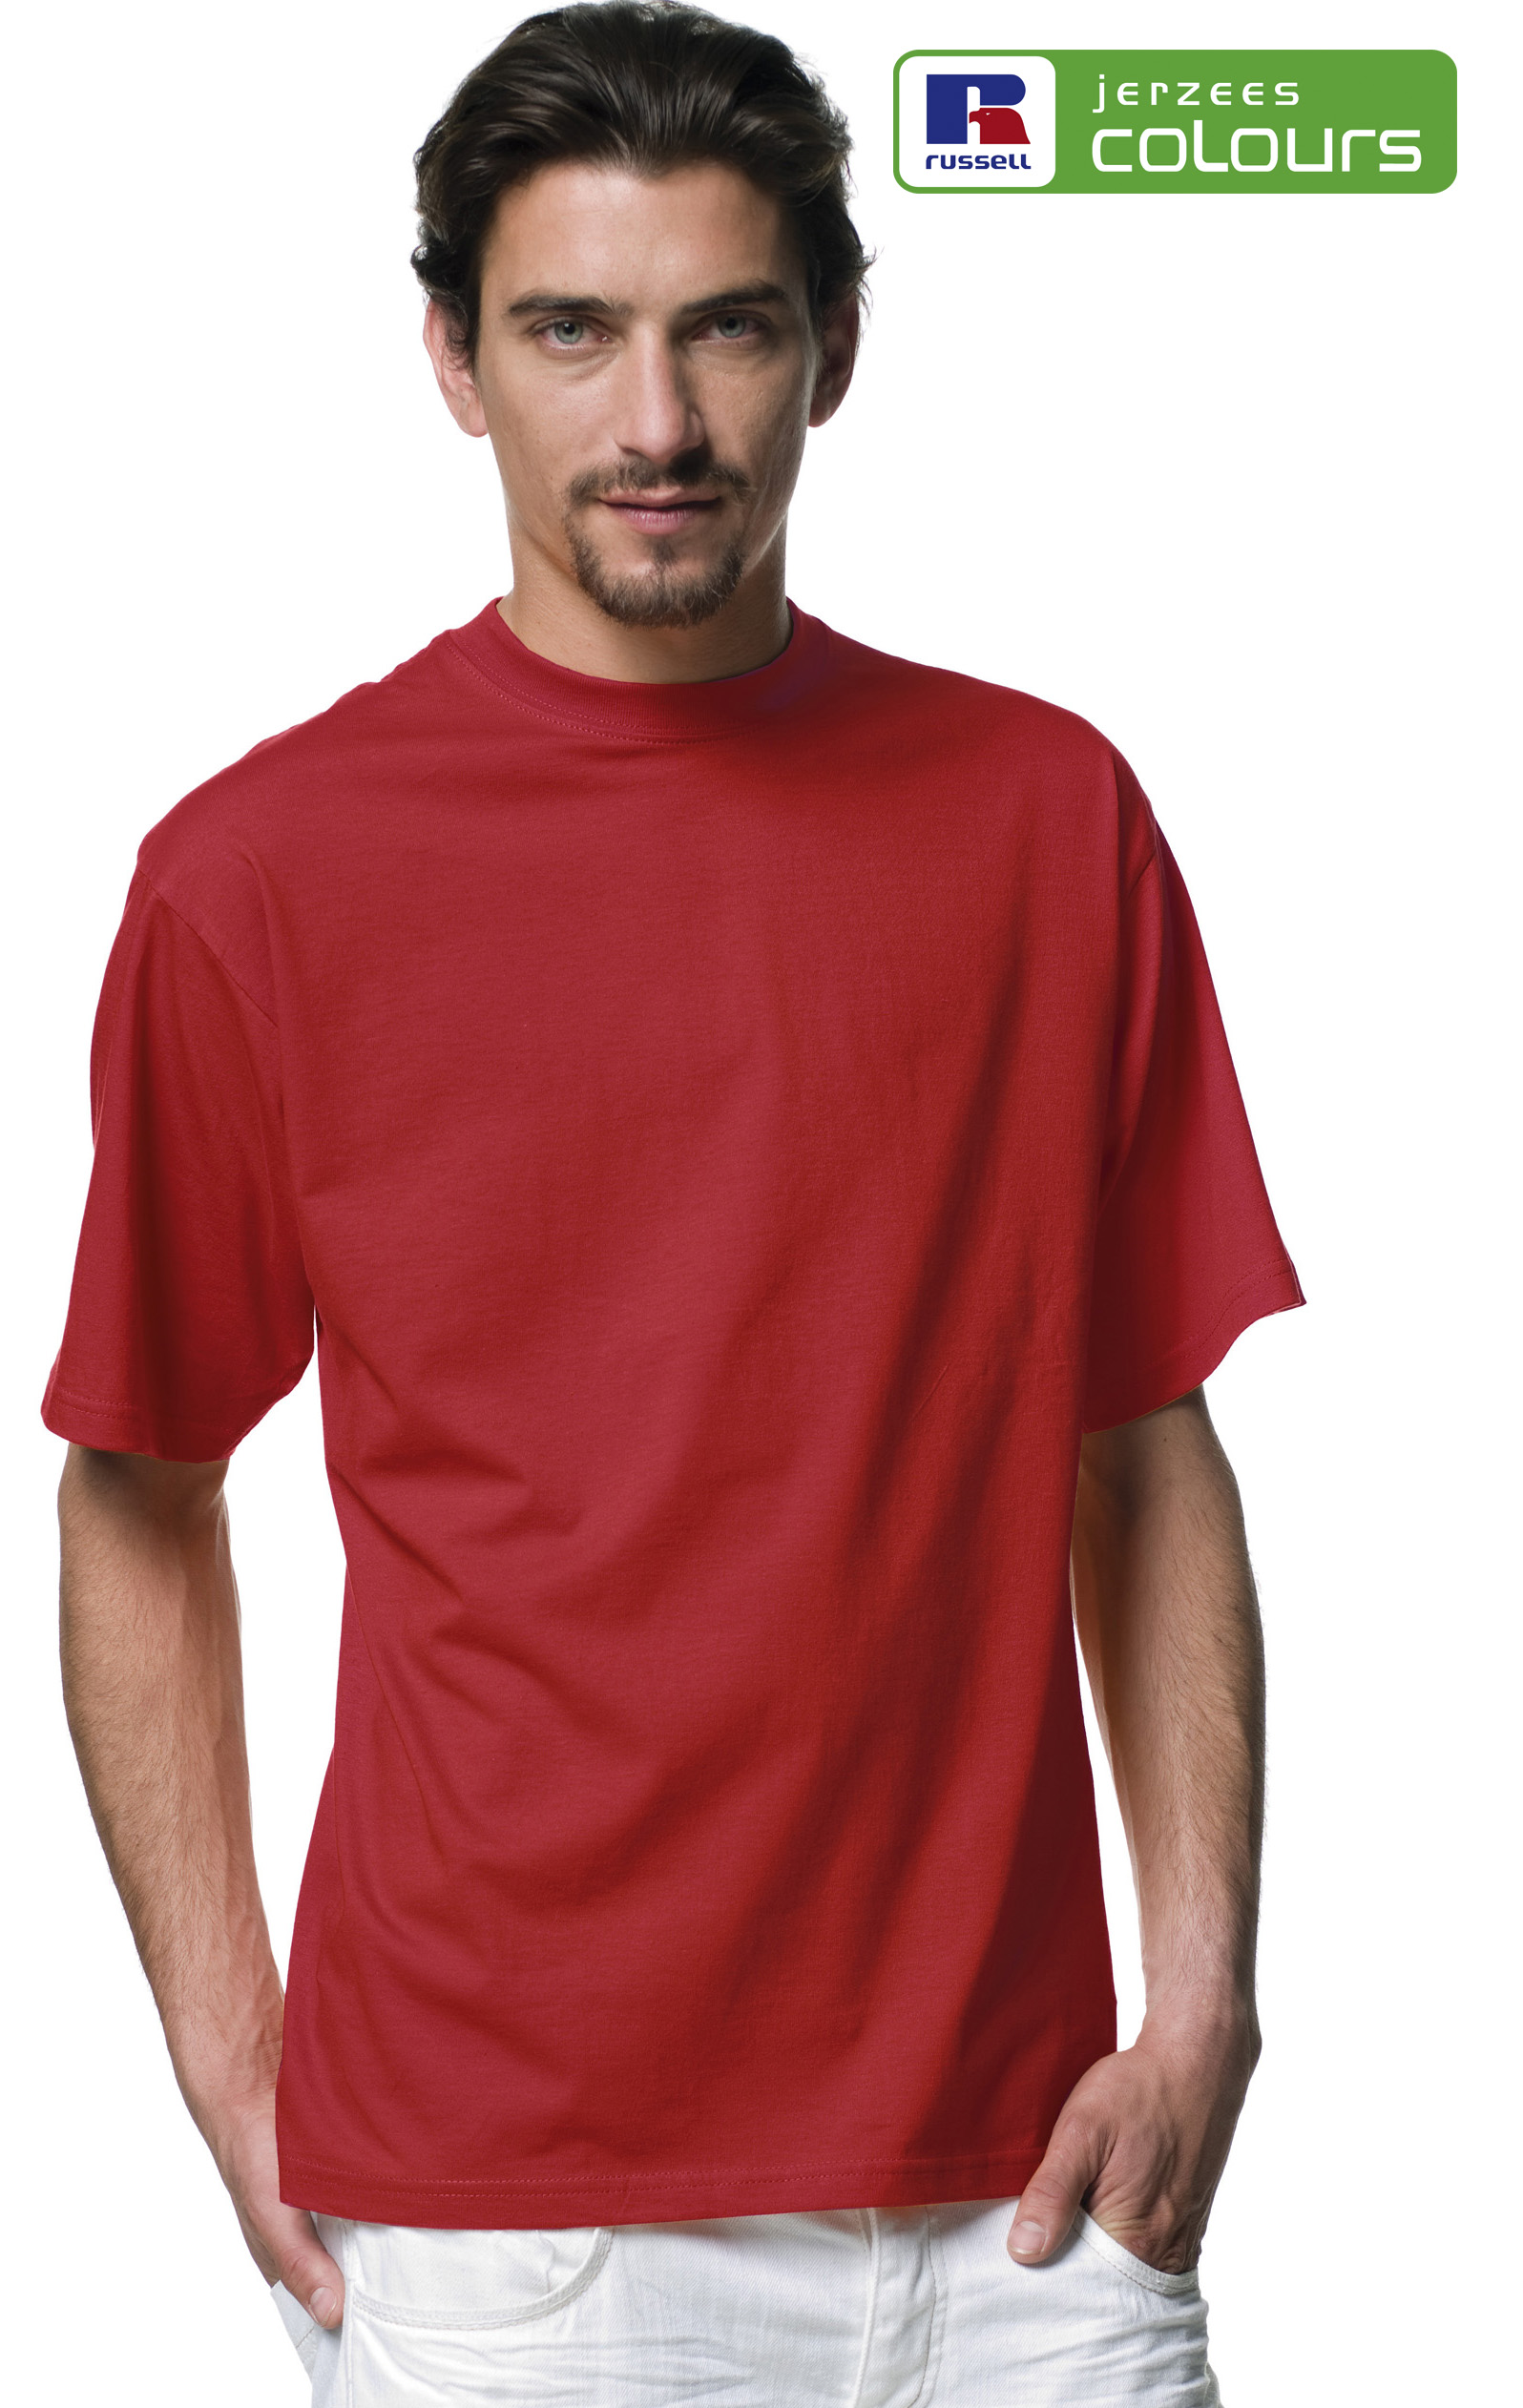 Russell Classic T-shirt Foto